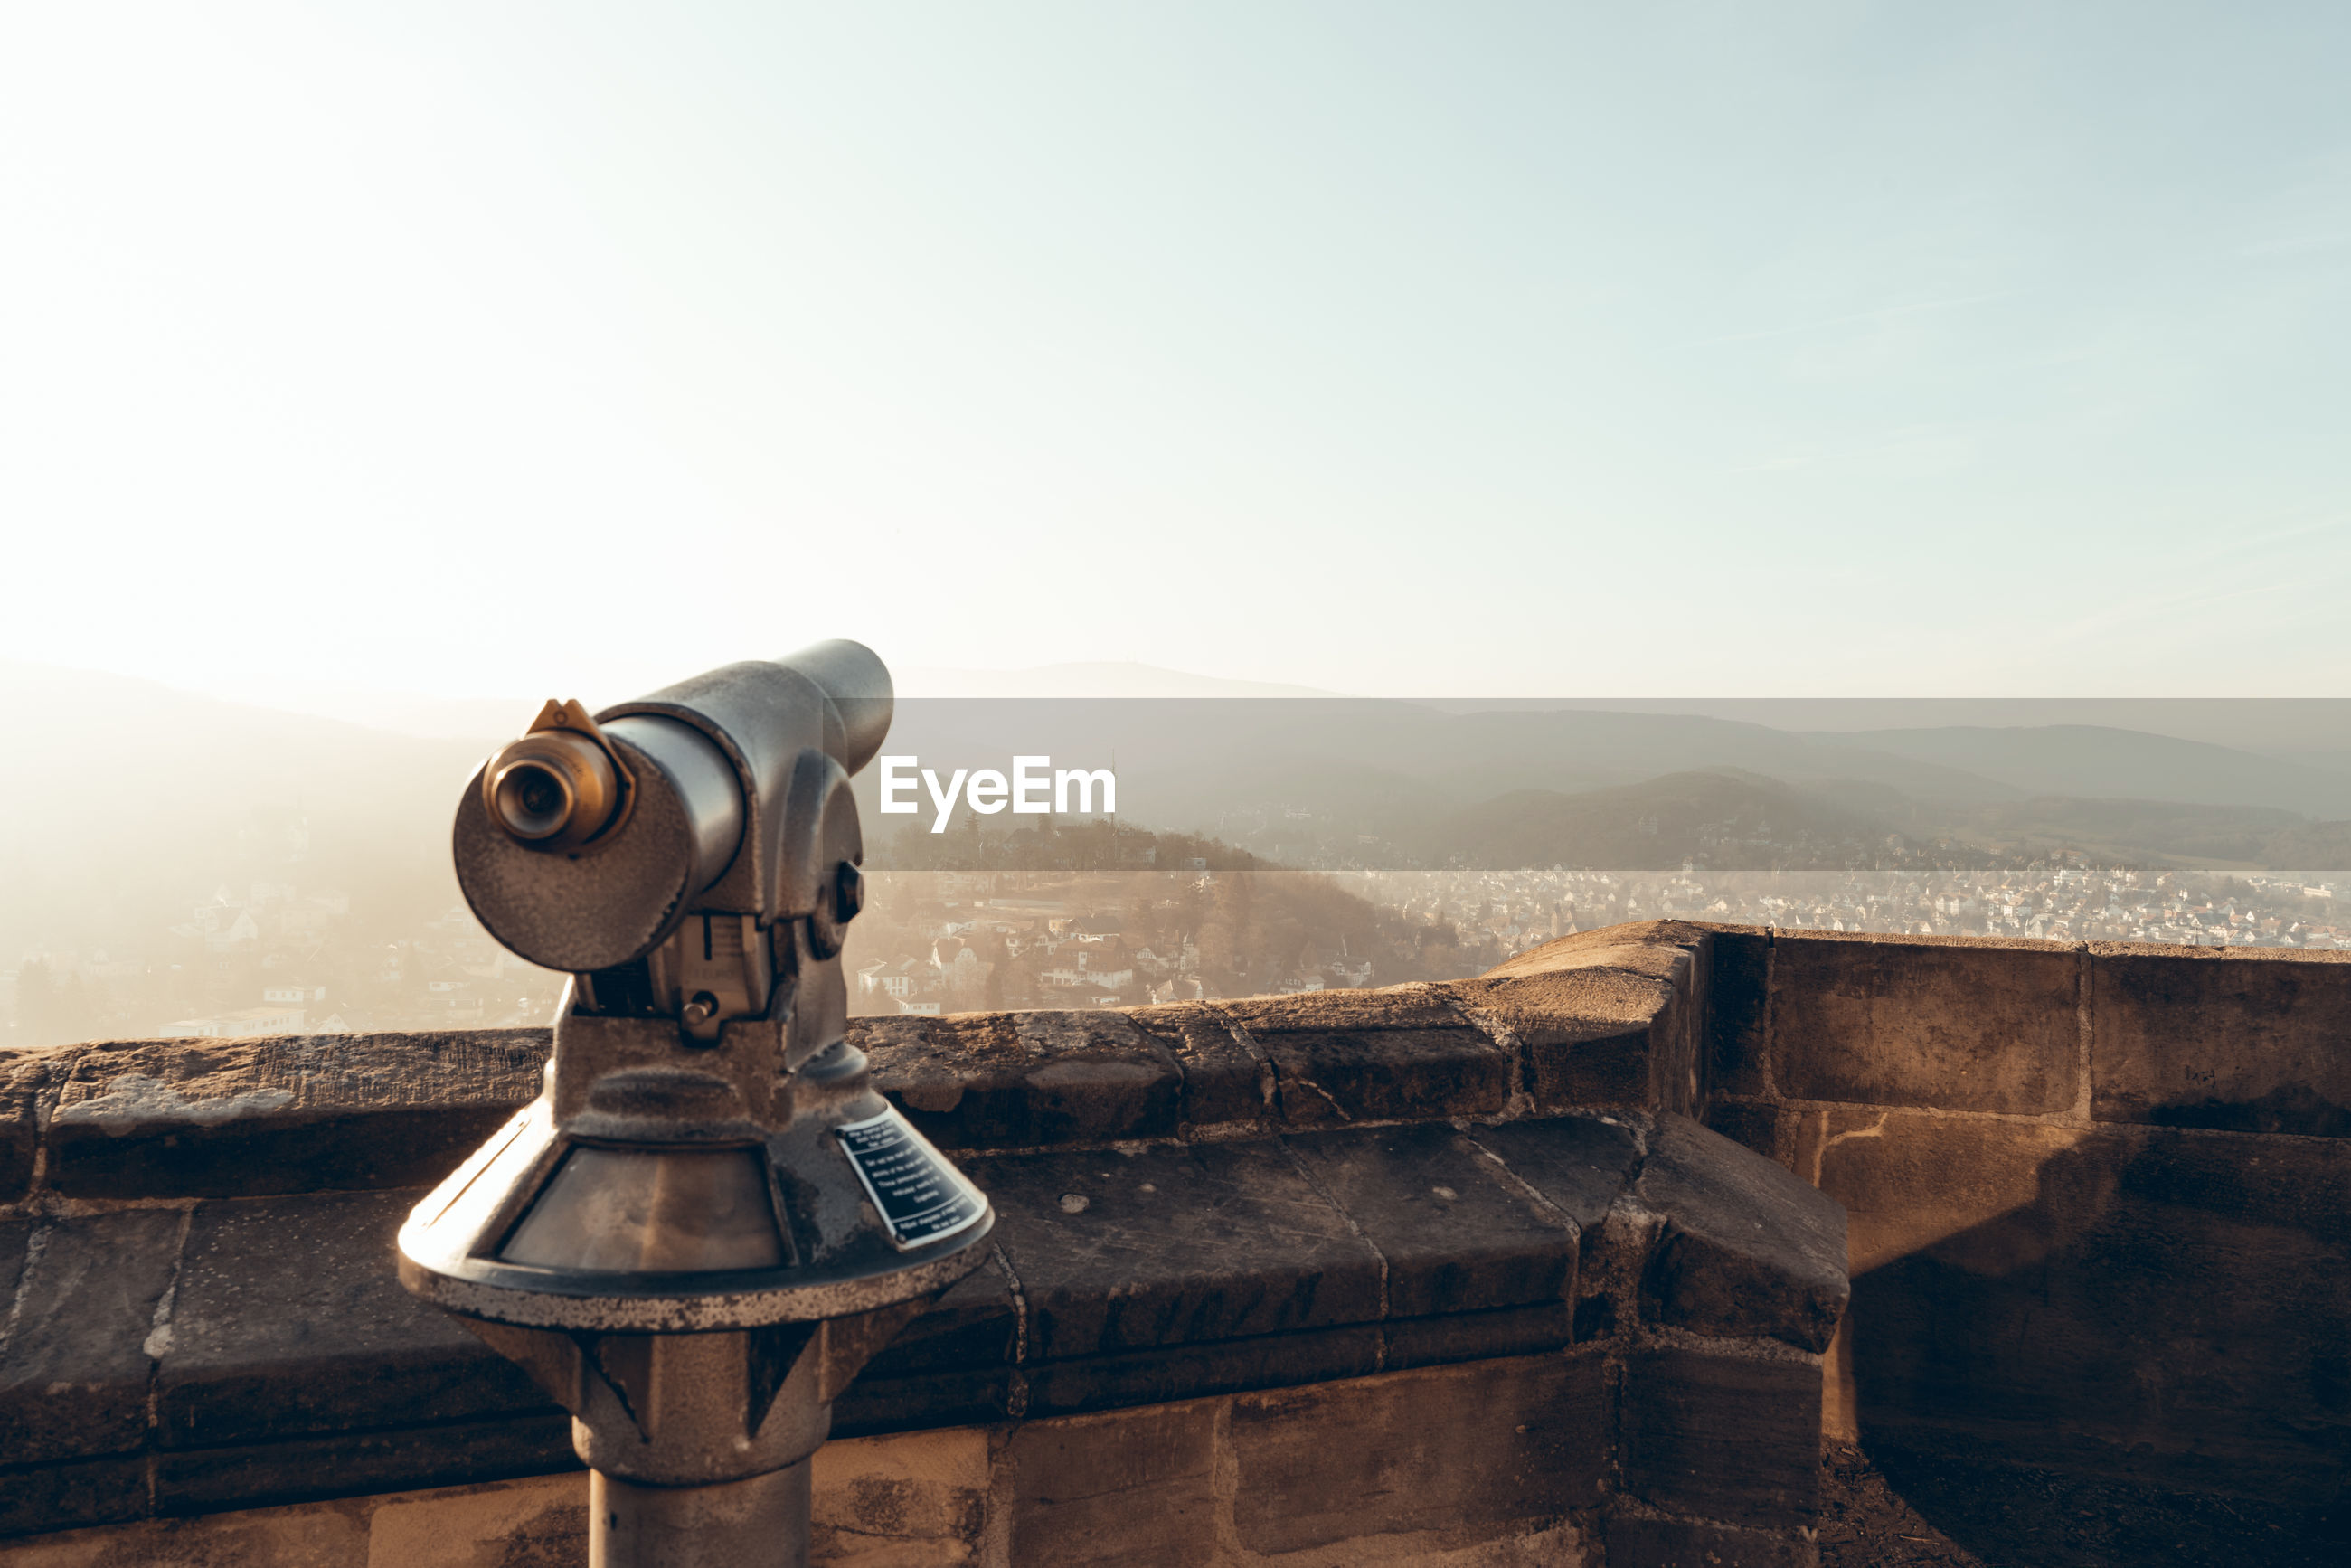 Coin-operated binoculars on mountain against clear sky